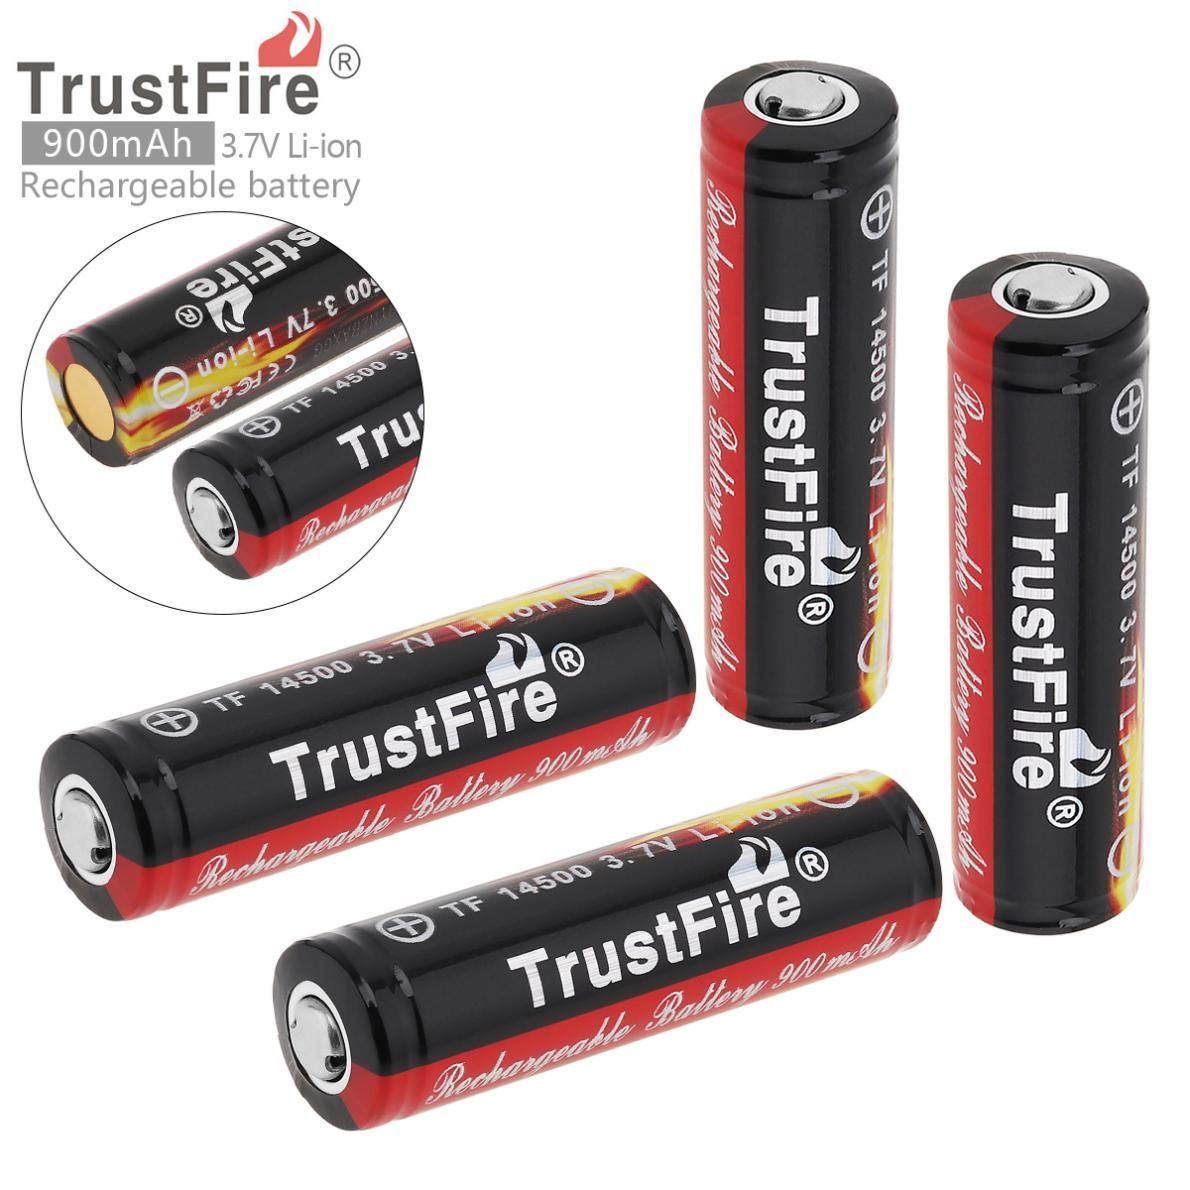 4 PiecesTrstFire 14500 Battery 3.7V ICR14500 900Mah Li-ion 14500 Rechargeable Battery Batteries with PCB <font><b>Protected</b></font> Board